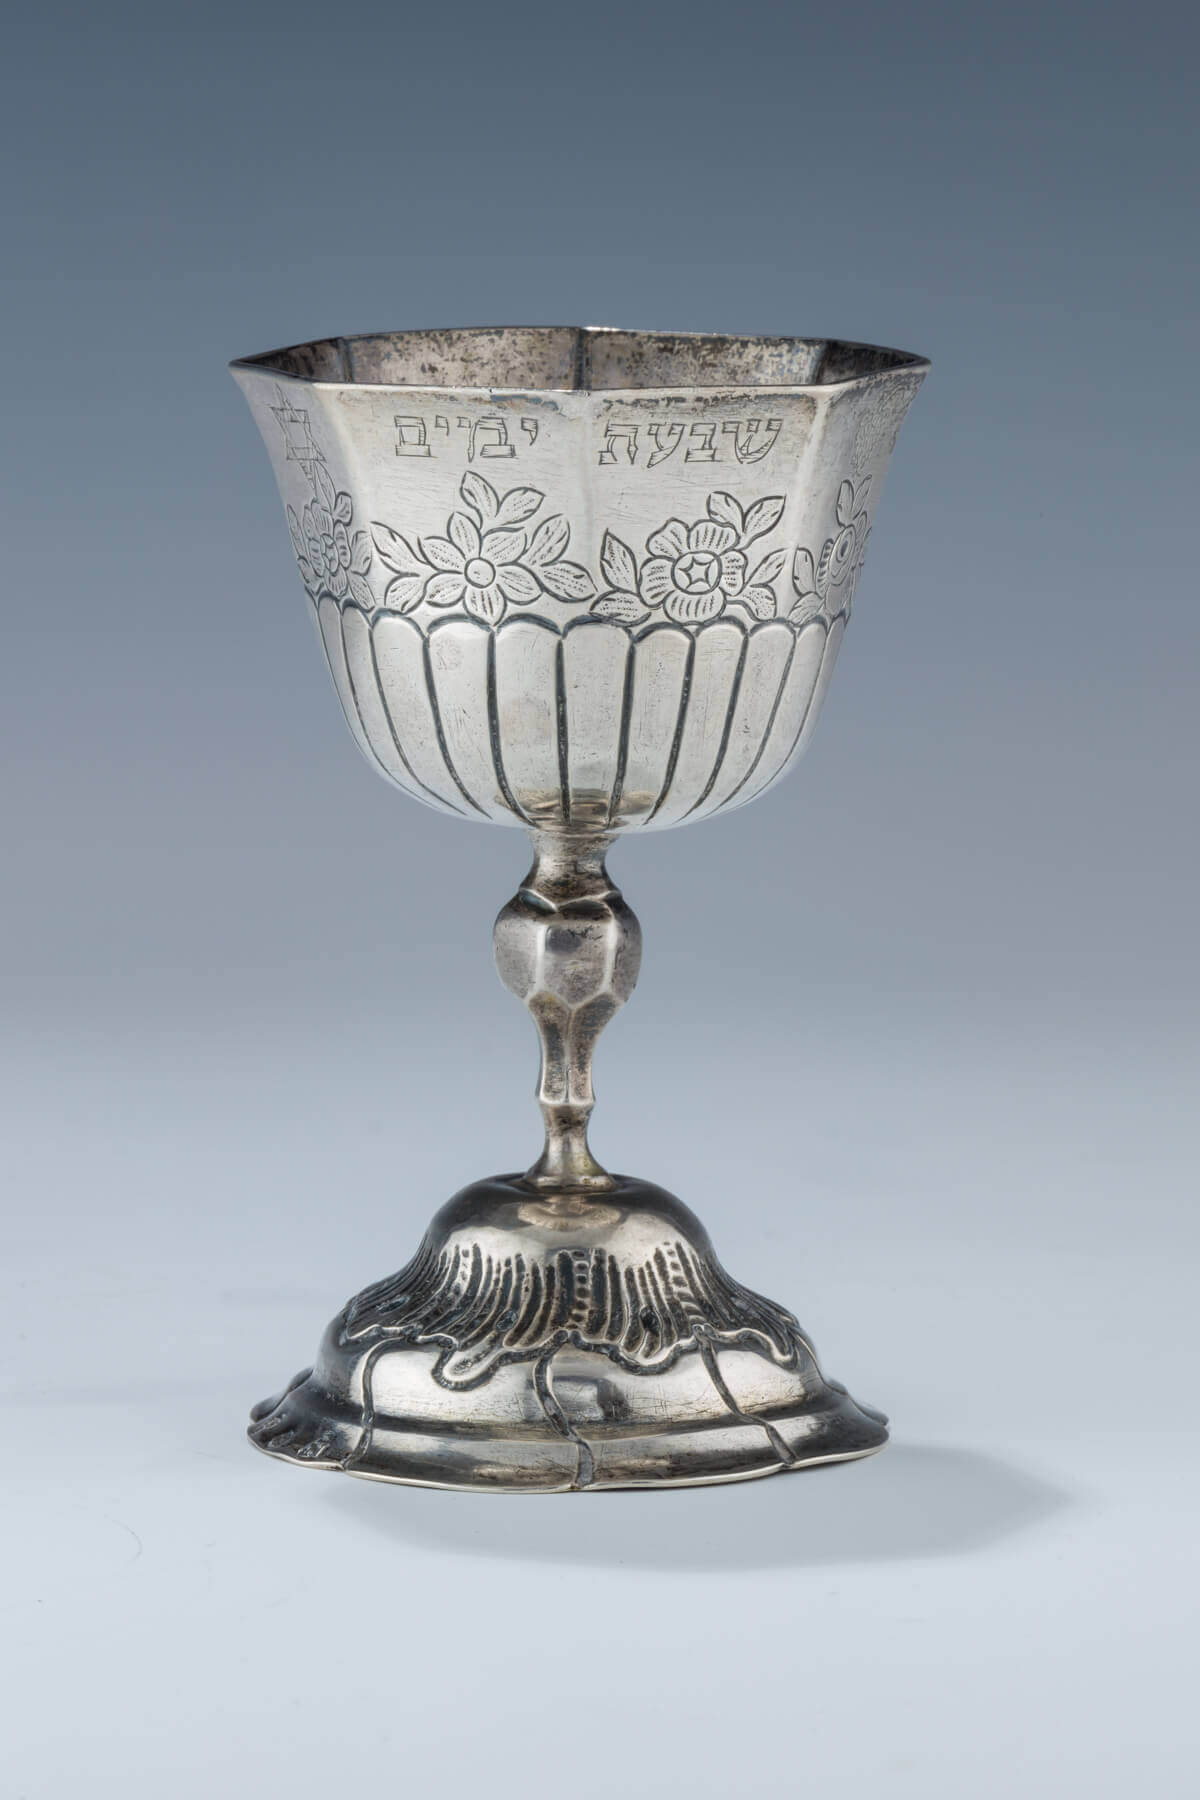 138. A RARE AND IMPORTANT SILVER SUCCOTH GOBLET BY GEORG NICHOLAS BIERFREUND